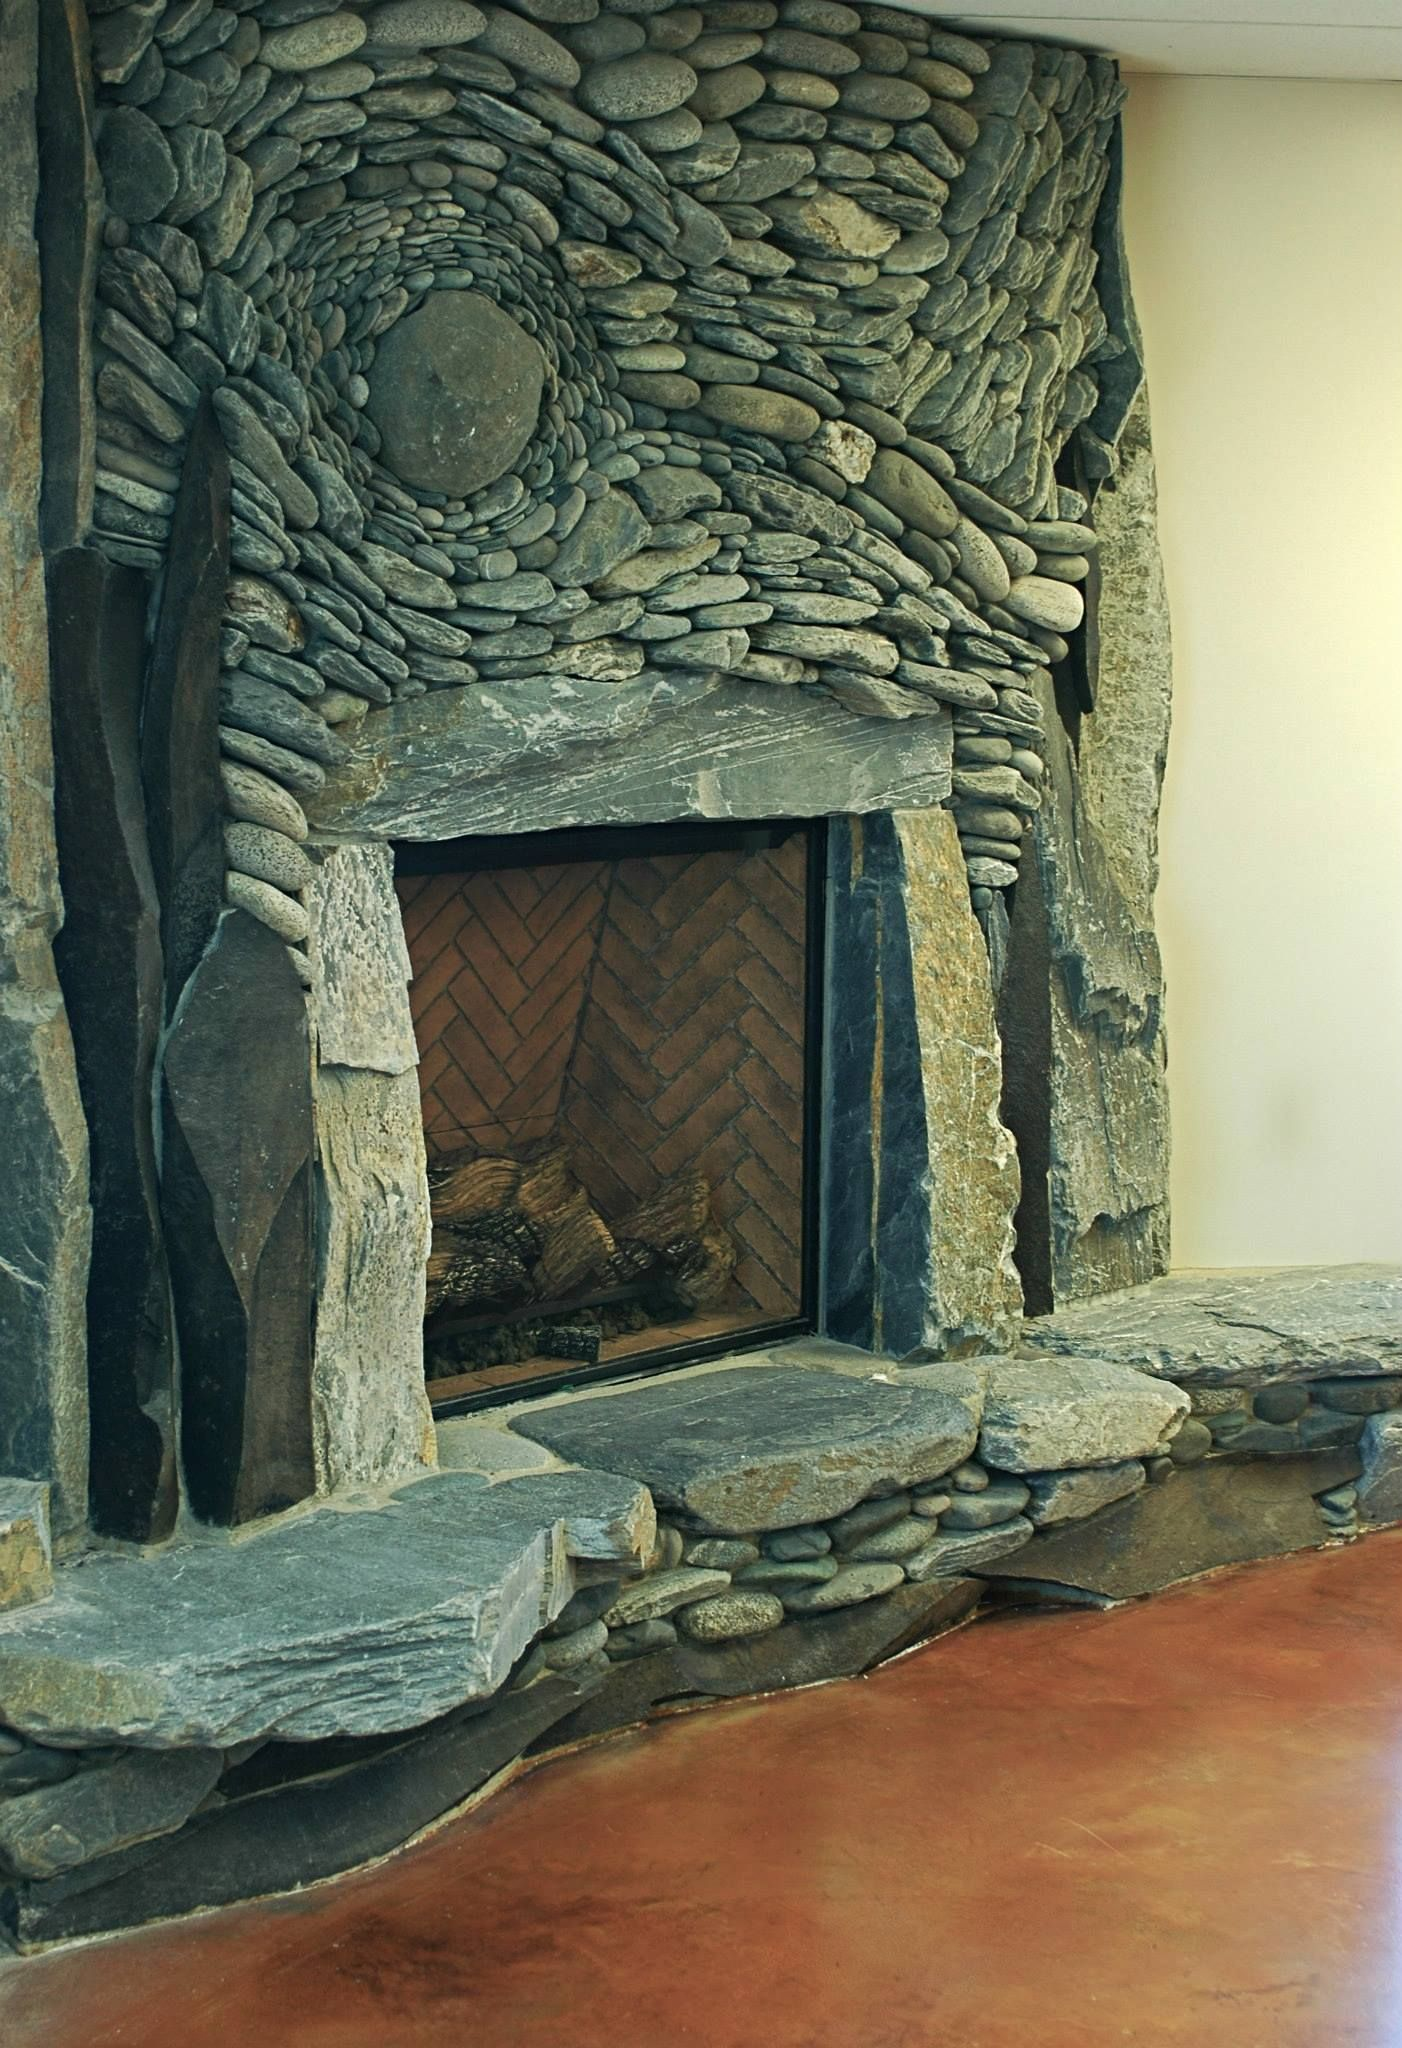 Vangogh S Starry Night Rendered In Stone Natural Stone Fireplace Norma Rae Www Ancientartofstone Com Natural Stone Fireplaces Stone Fireplace Fireplace